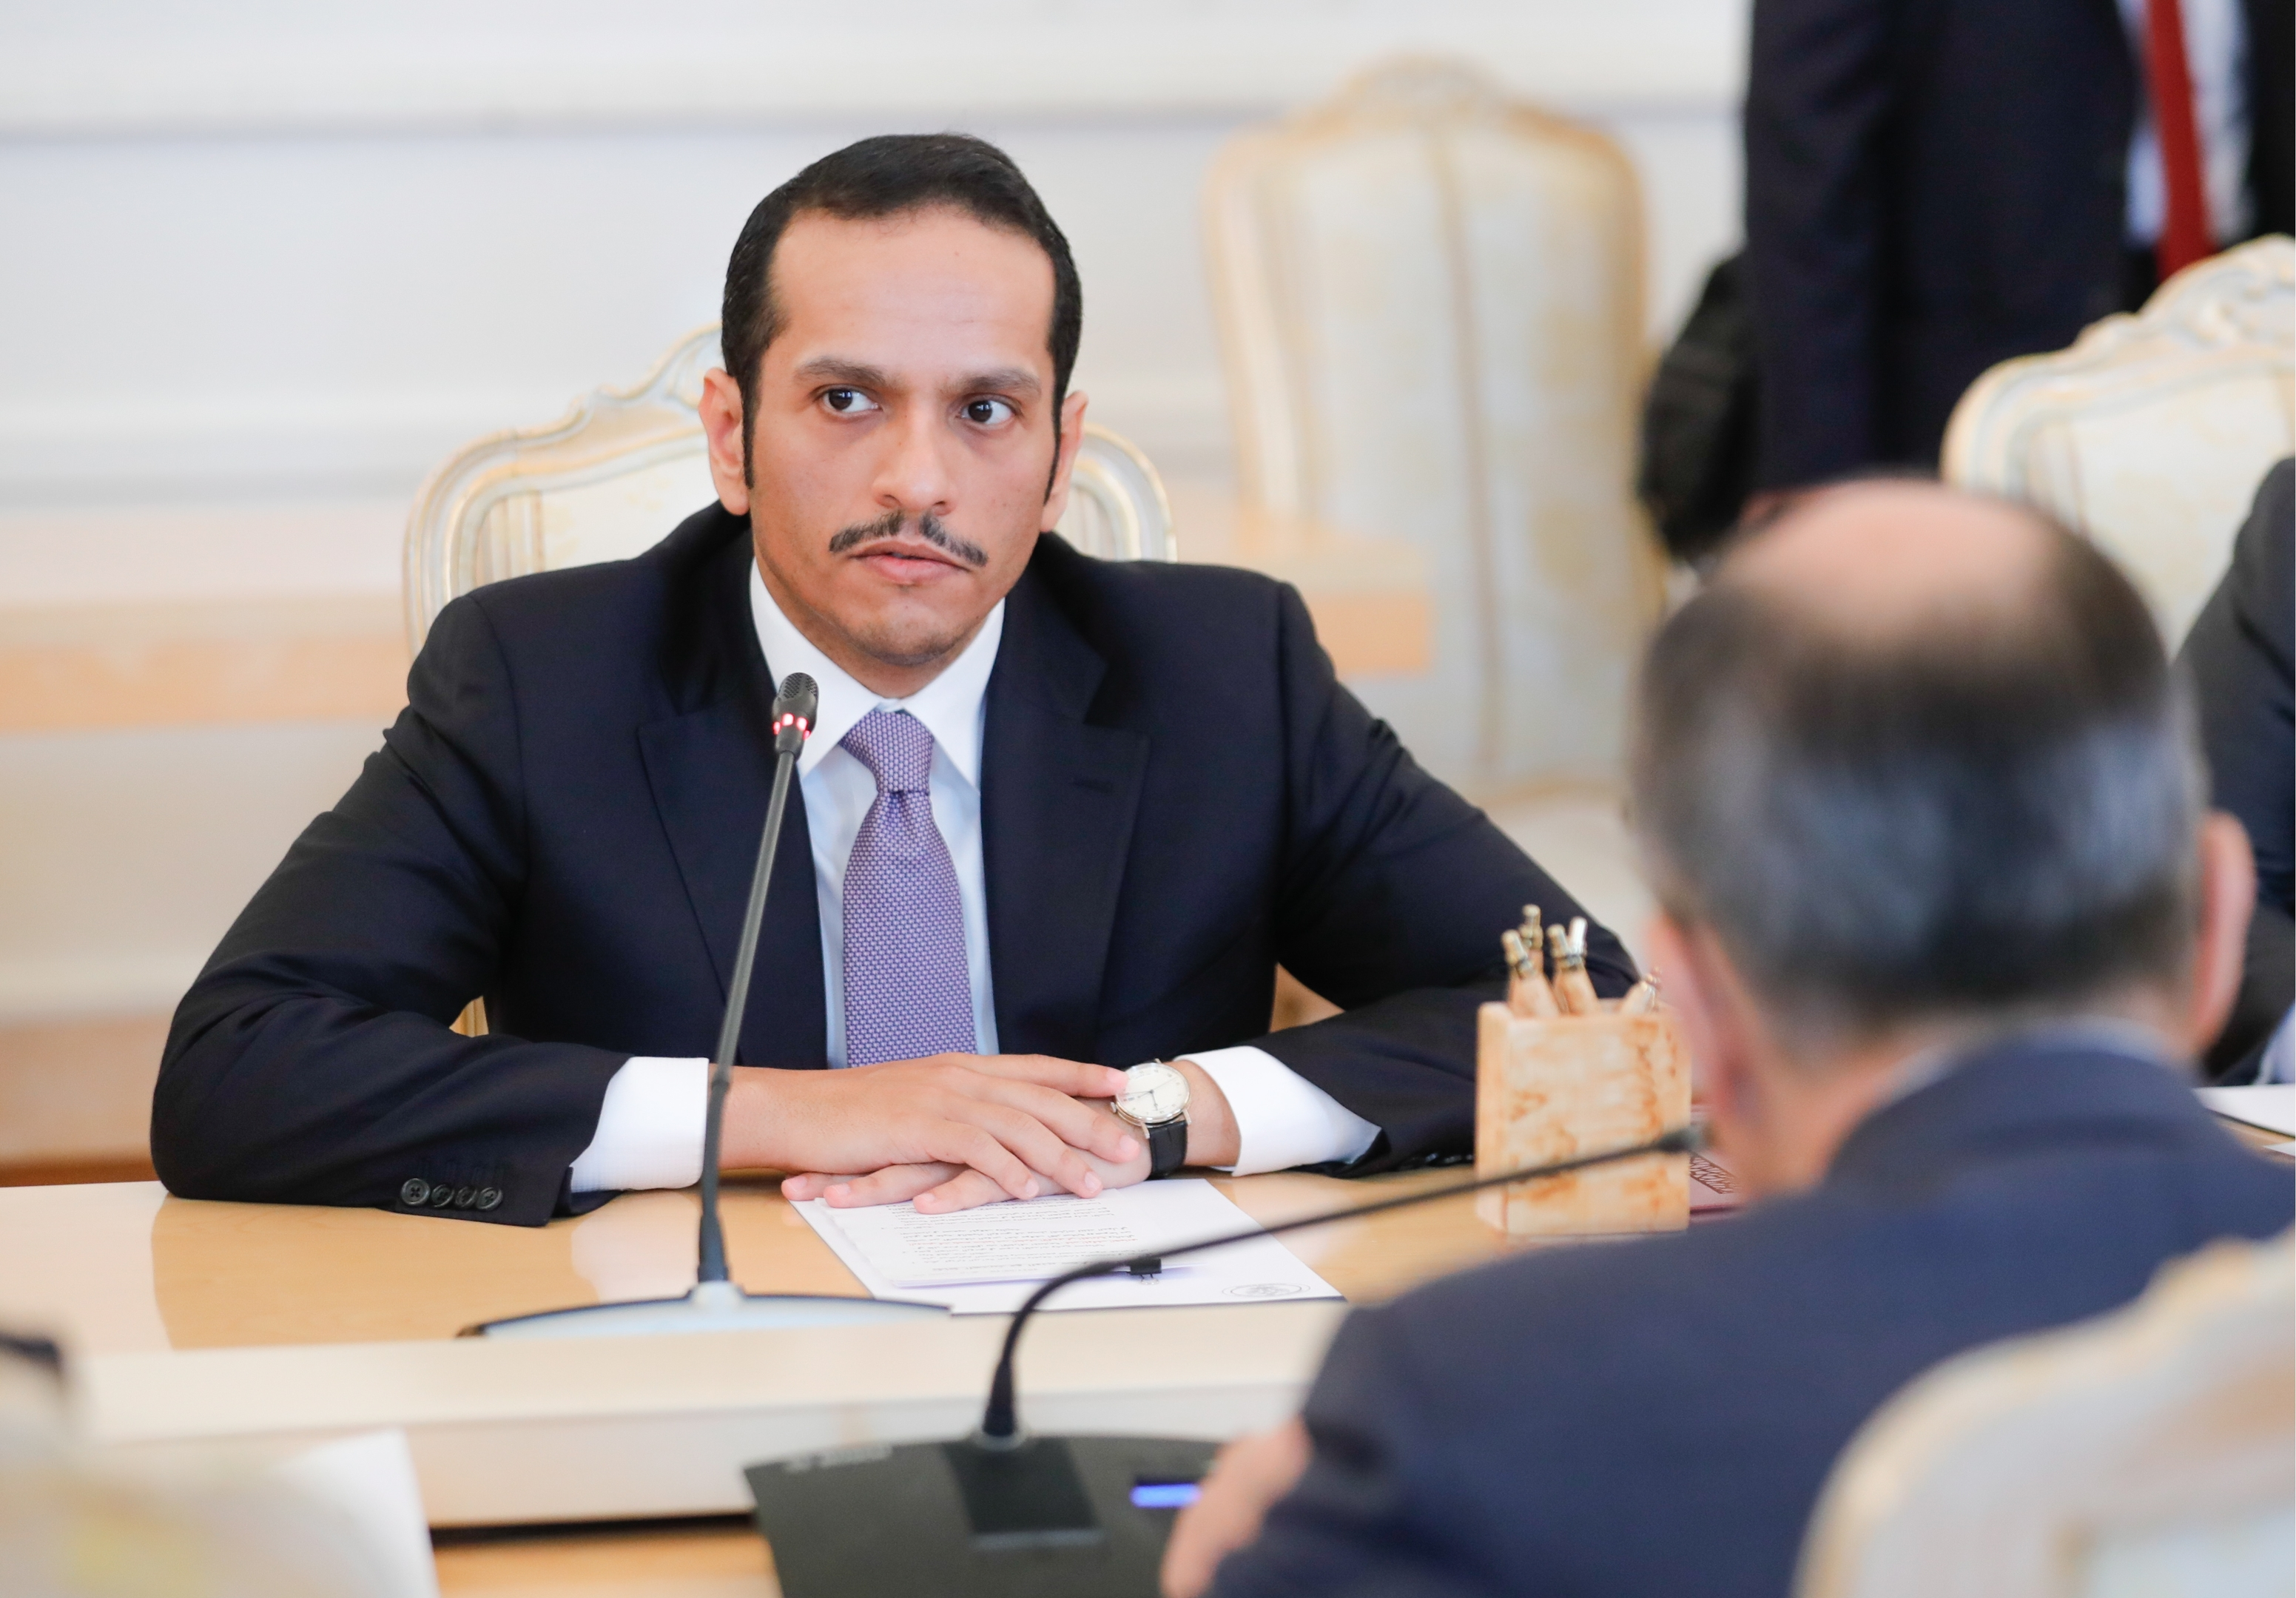 Qatar's Foreign Minister Mohammed bin Abdulrahman Al Thani during a meeting with Russia's Foreign Minister Sergei Lavrov at the Russian Foreign Ministry's Reception House